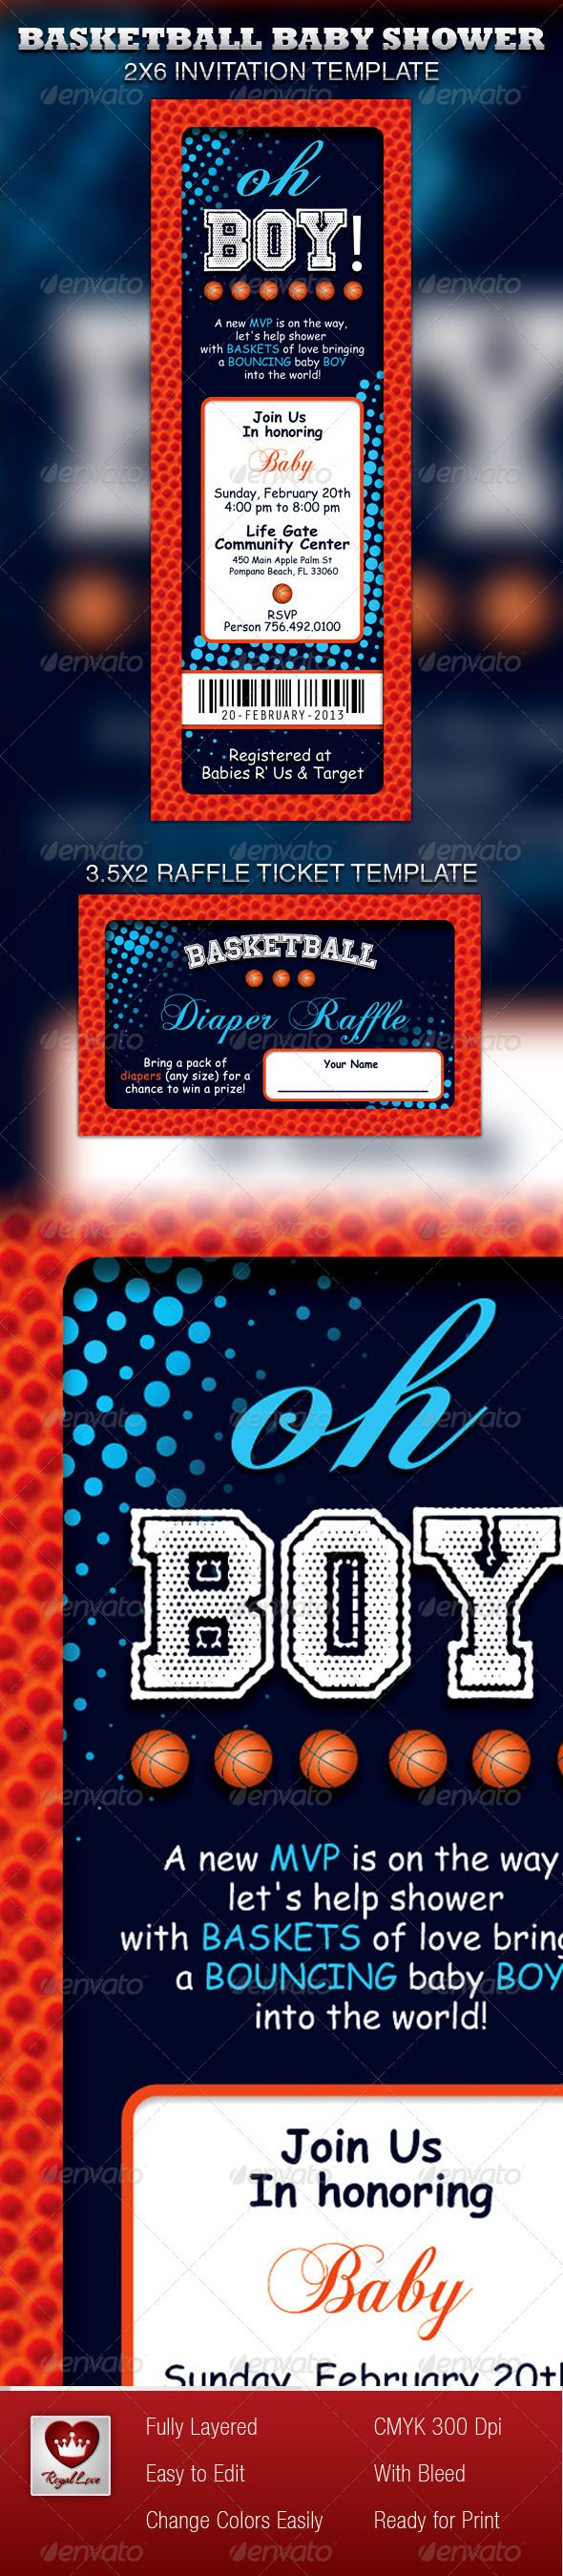 baby shower invitation wording for bringing diapers%0A Basketball Baby Shower Invitation  u     Raffle Ticket